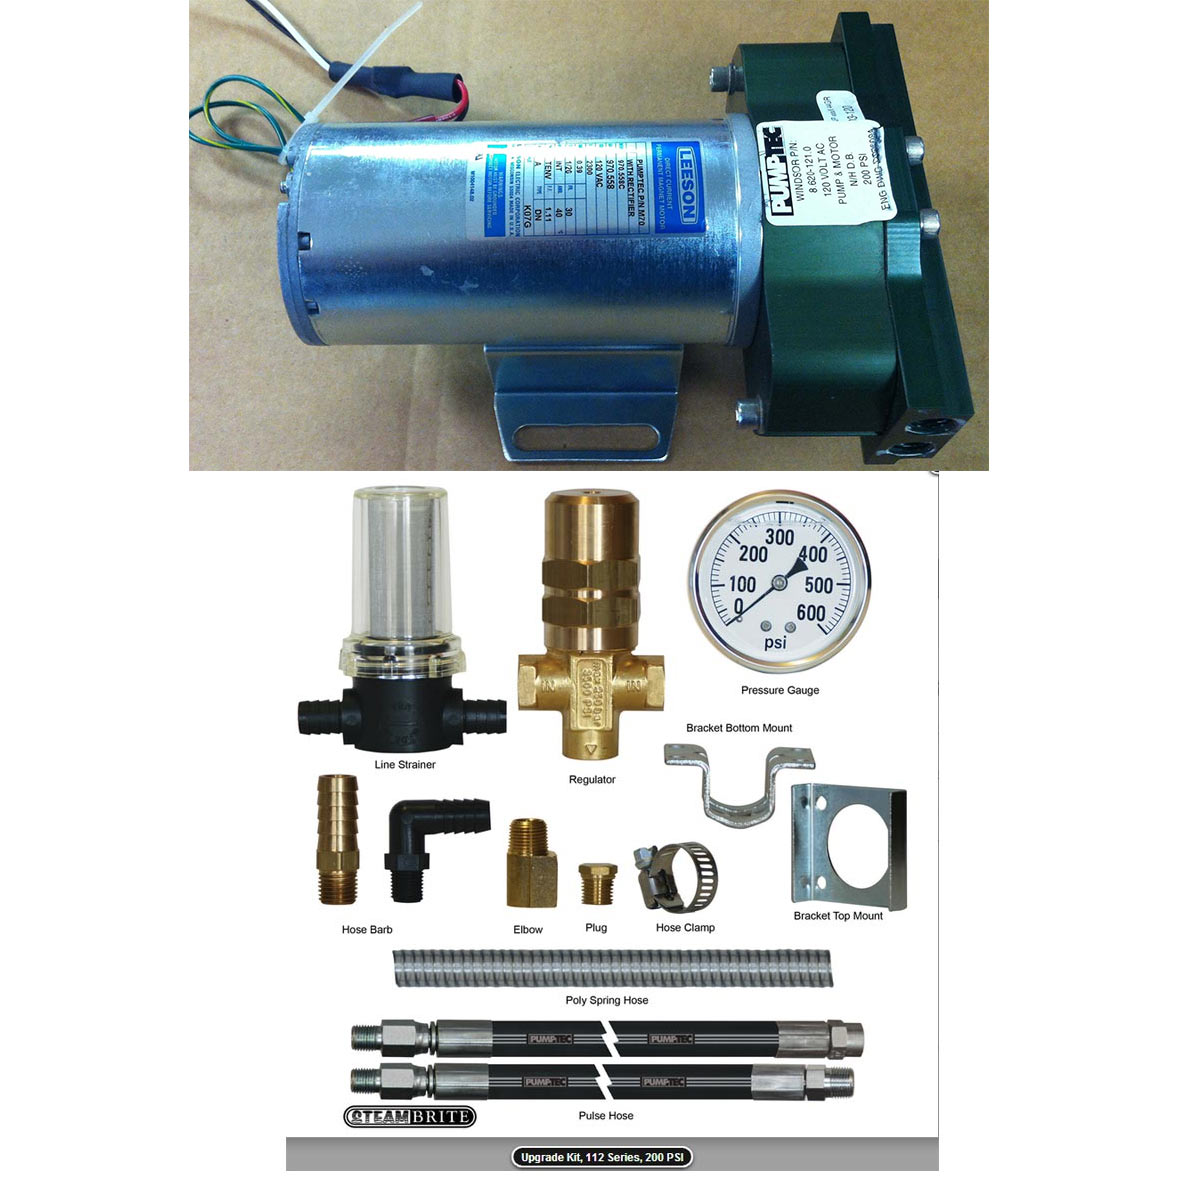 Pumptec 200psi 112V Pump w pressure regulator and gauge 120 Volt 20171027